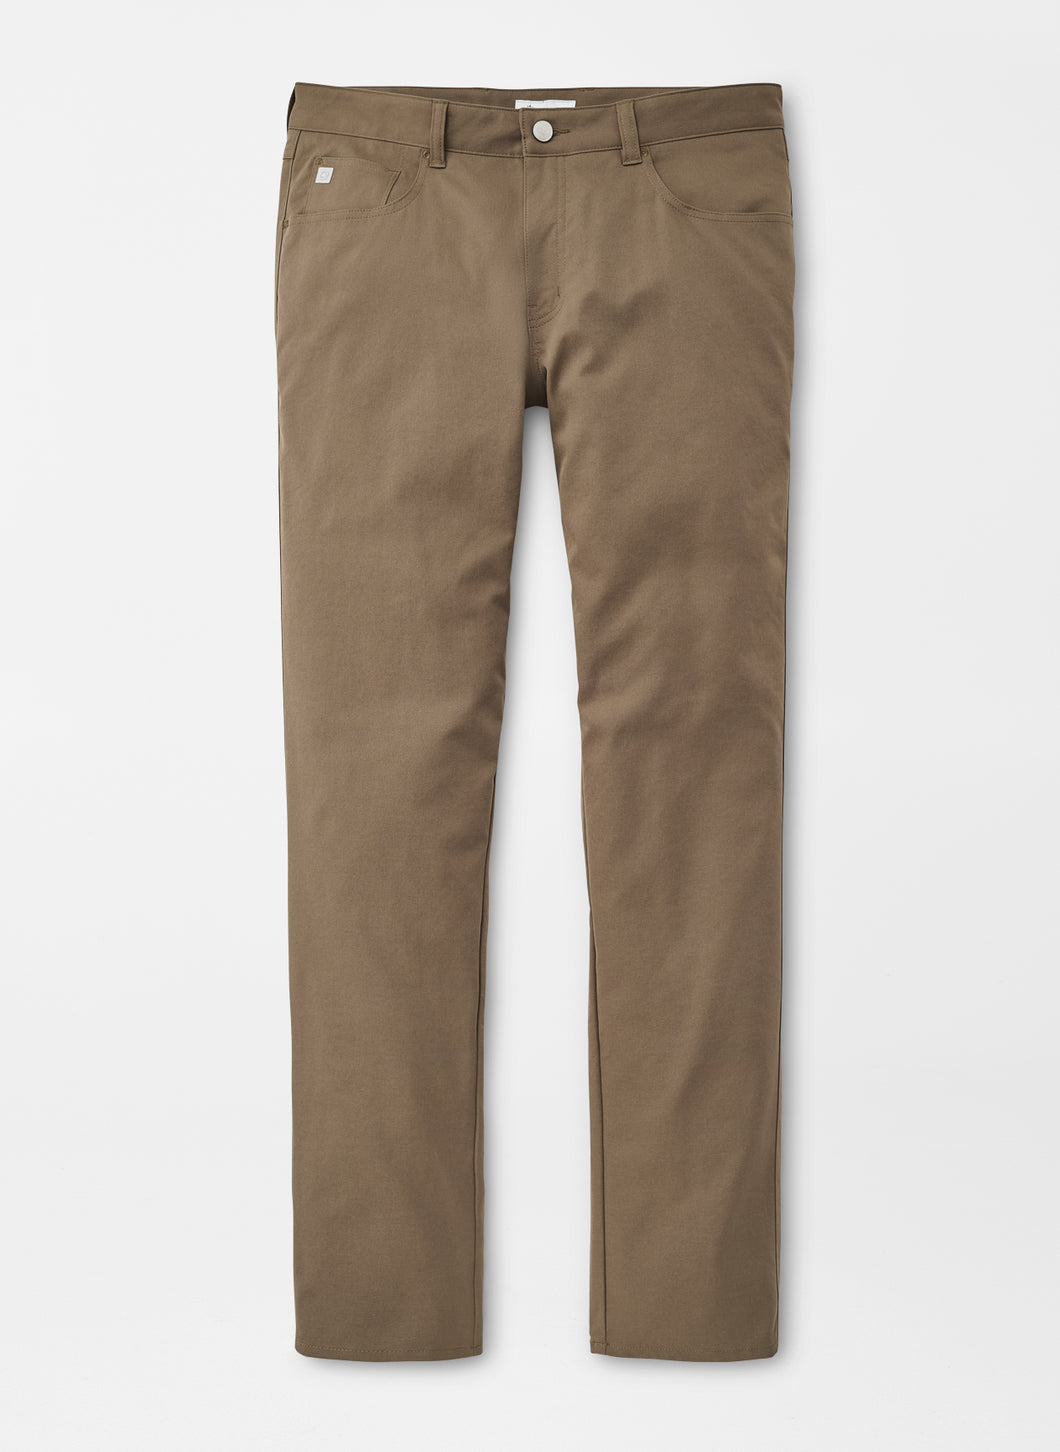 Peter Millar eb66 Performance Five-Pocket Pant in Toasted Beige